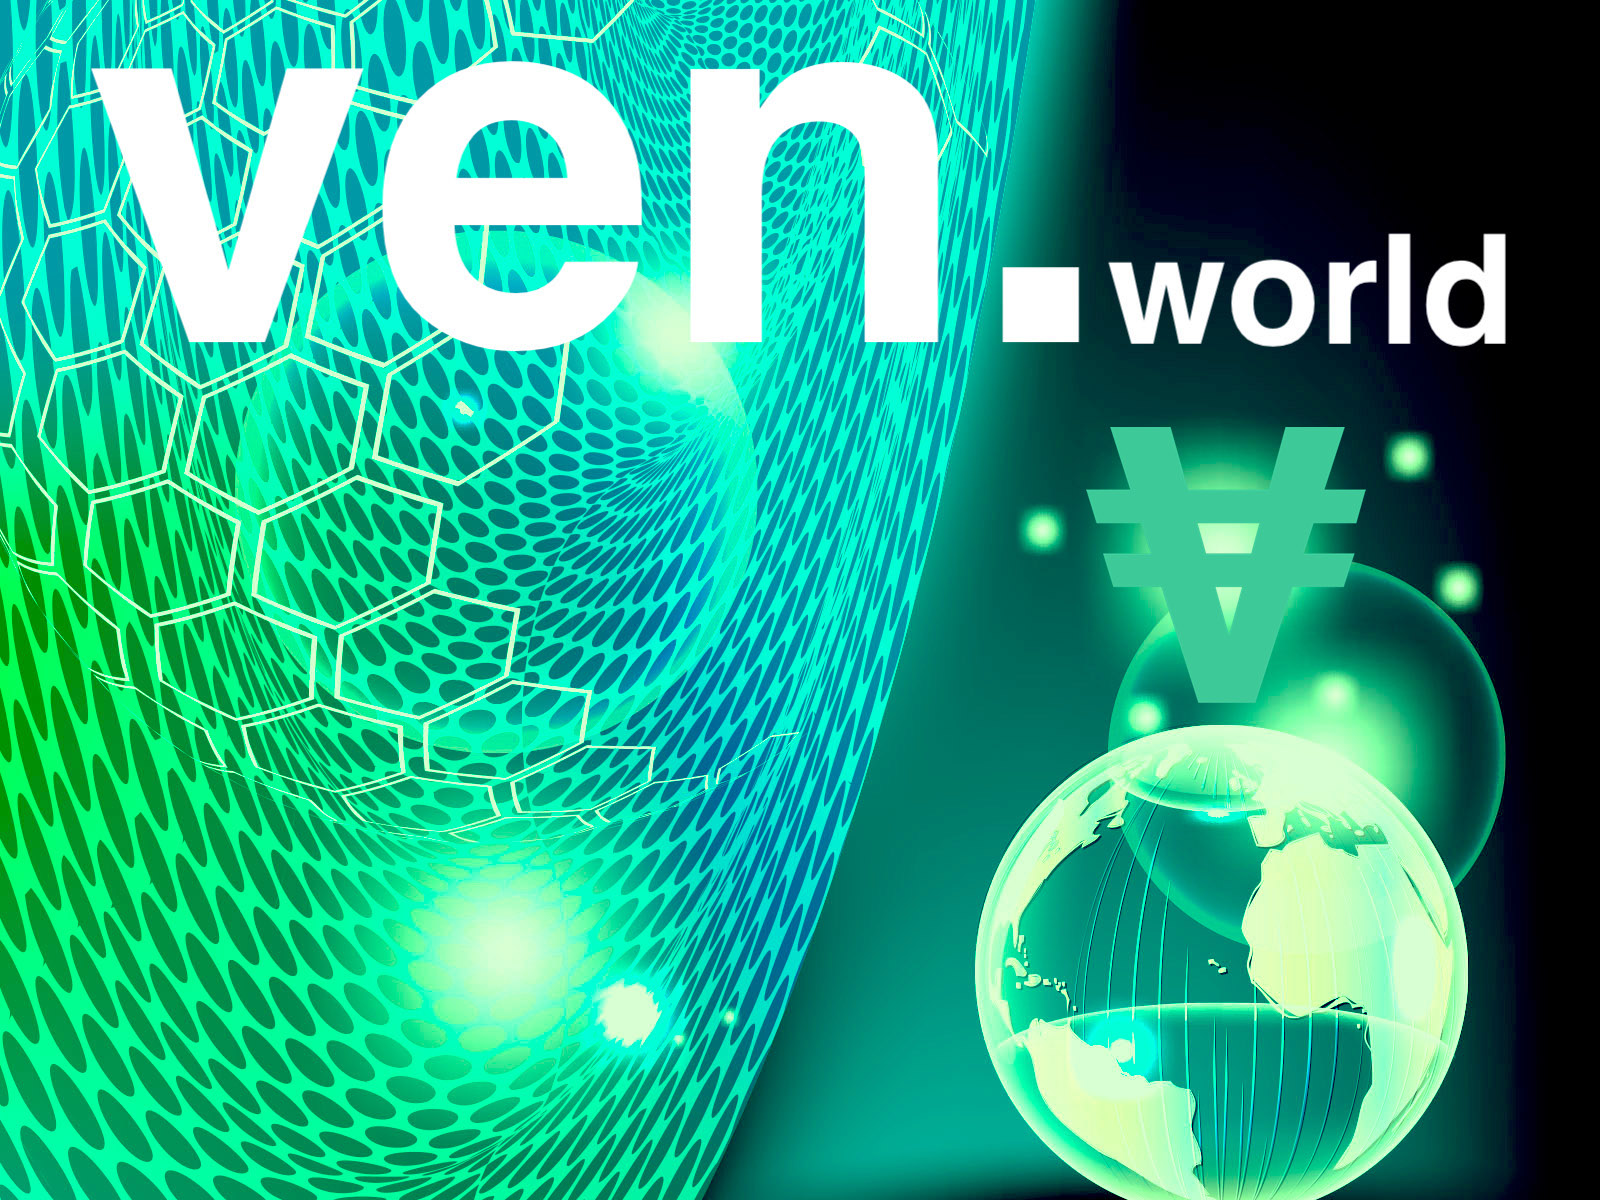 Ven World - An Unconference